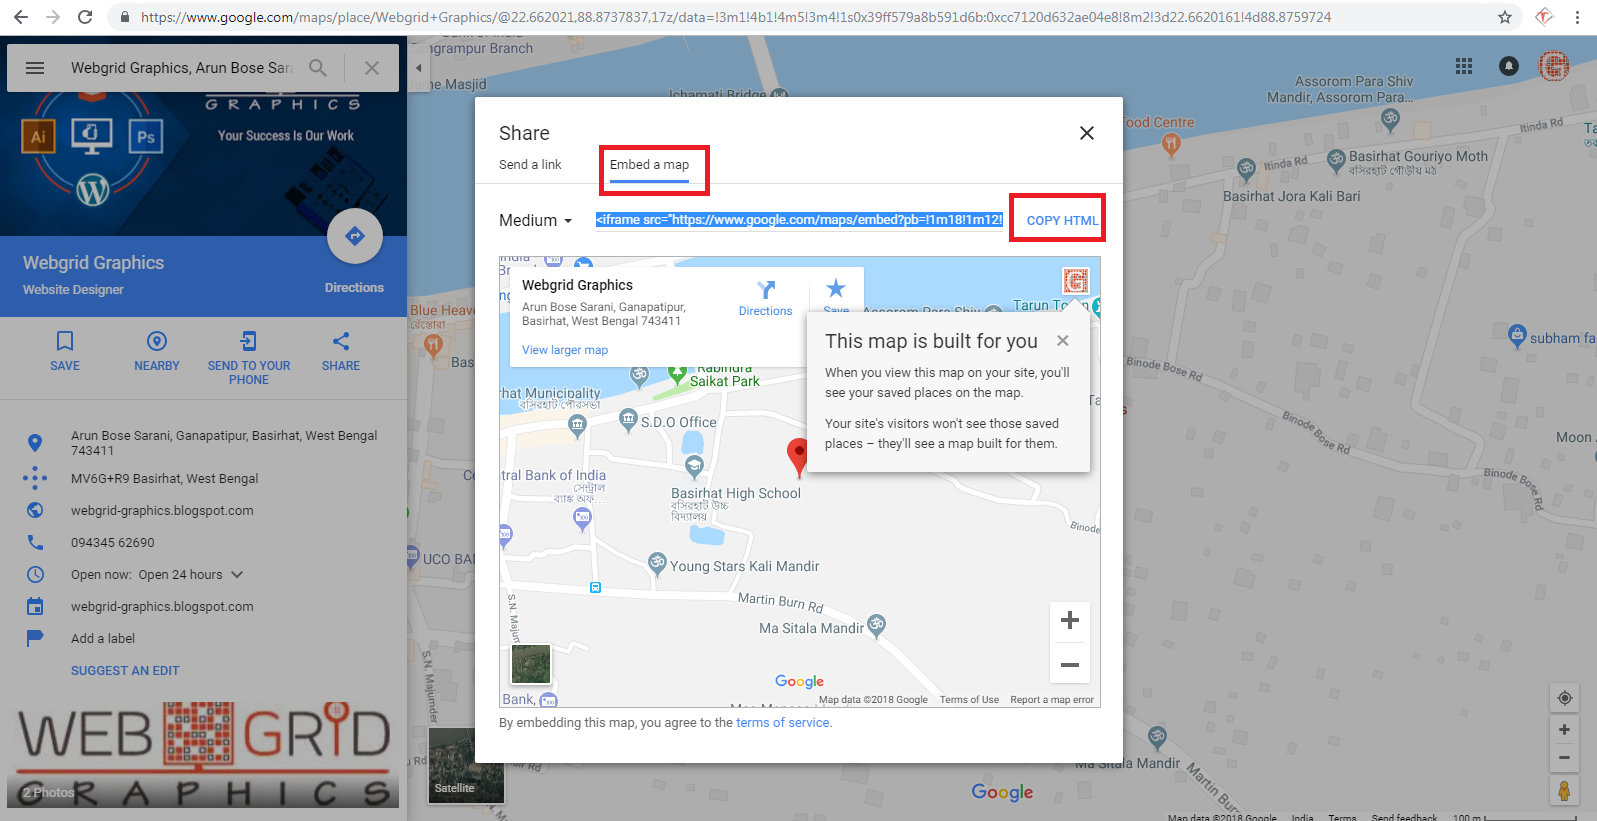 Display business address Google Map on your website on mapquest maps website, animation website, social networking website, expedia website, bing maps website, pinterest website, apple maps website, ebay website, social media website, gmail website,